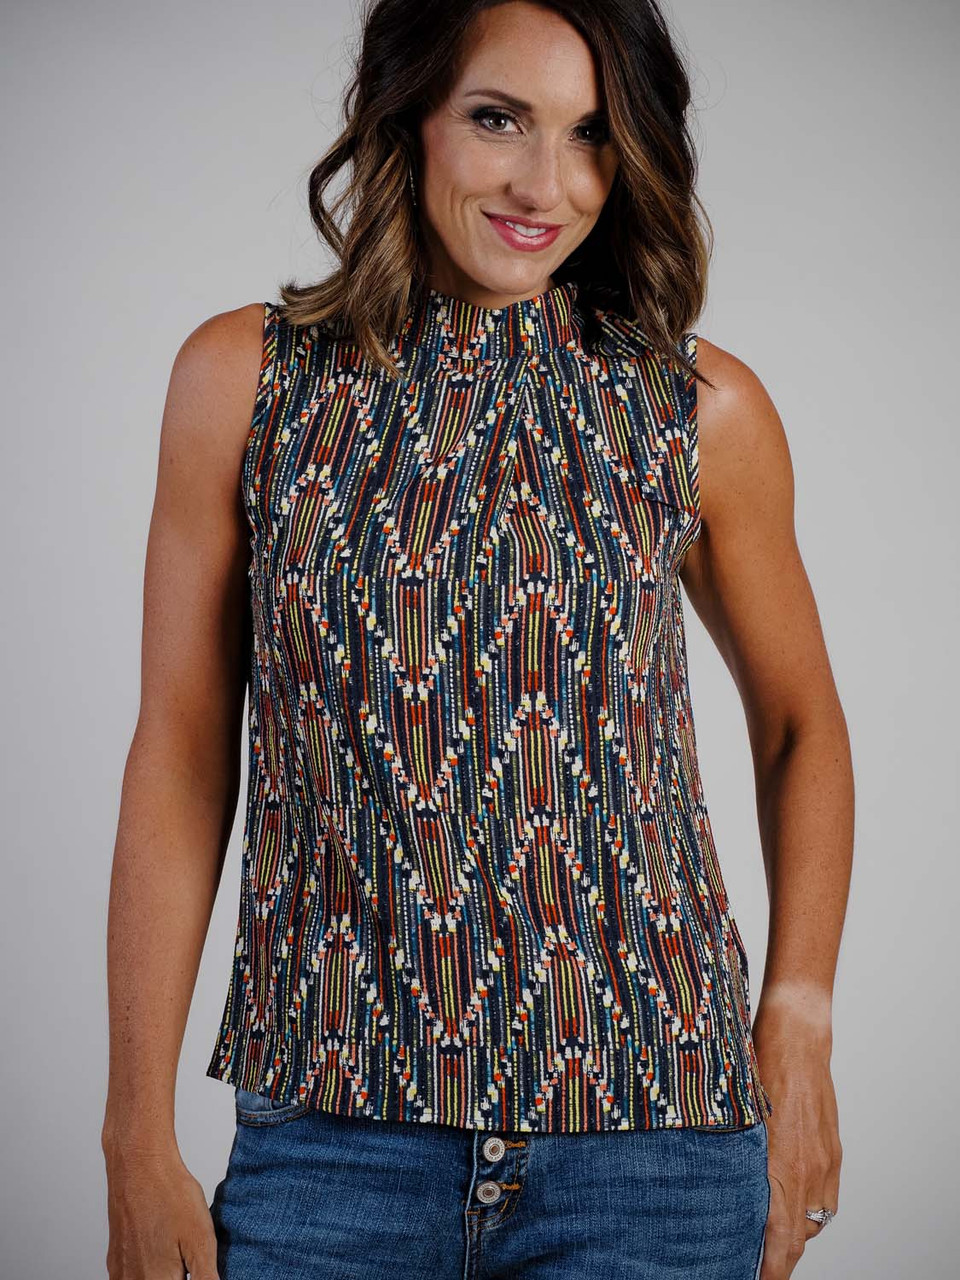 zigzag pattern mock neck blouse with tie sleeveless